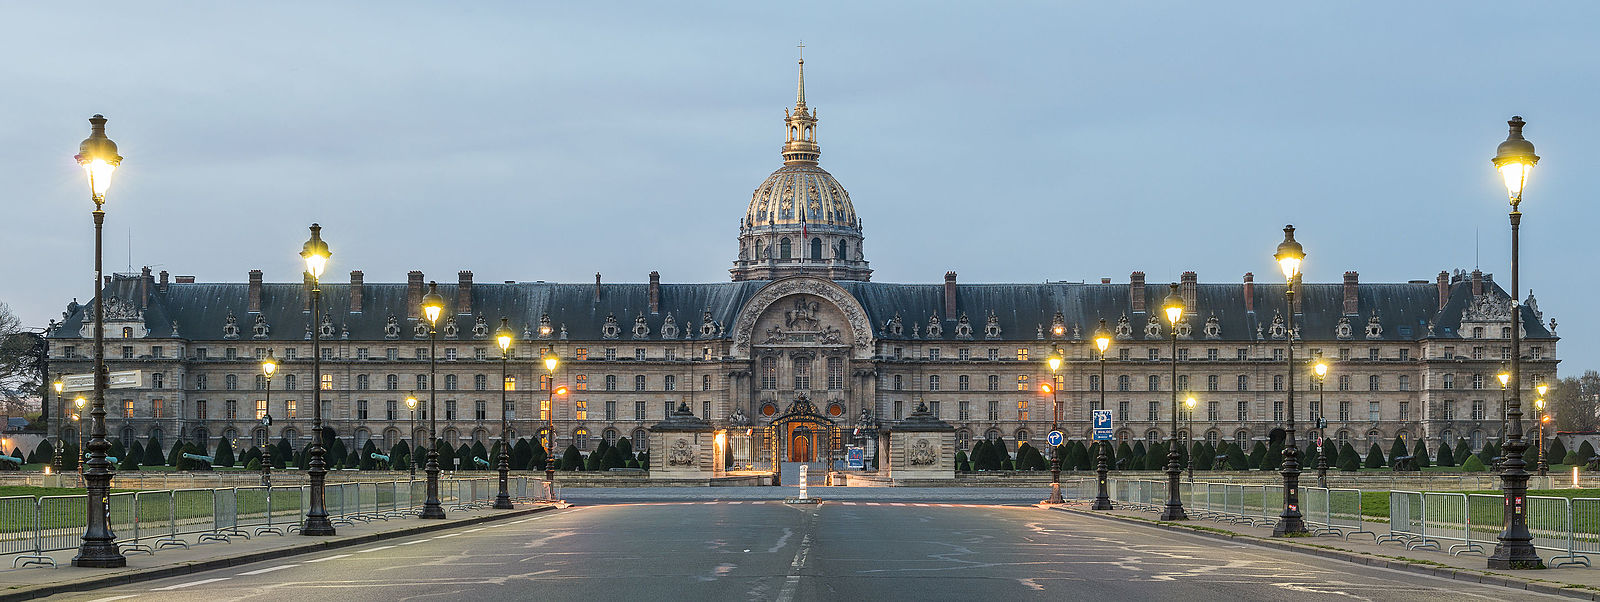 Chapel of Les Invalides, by Liberal Bruant and Jules Hardouin-Mansart - Sheet7